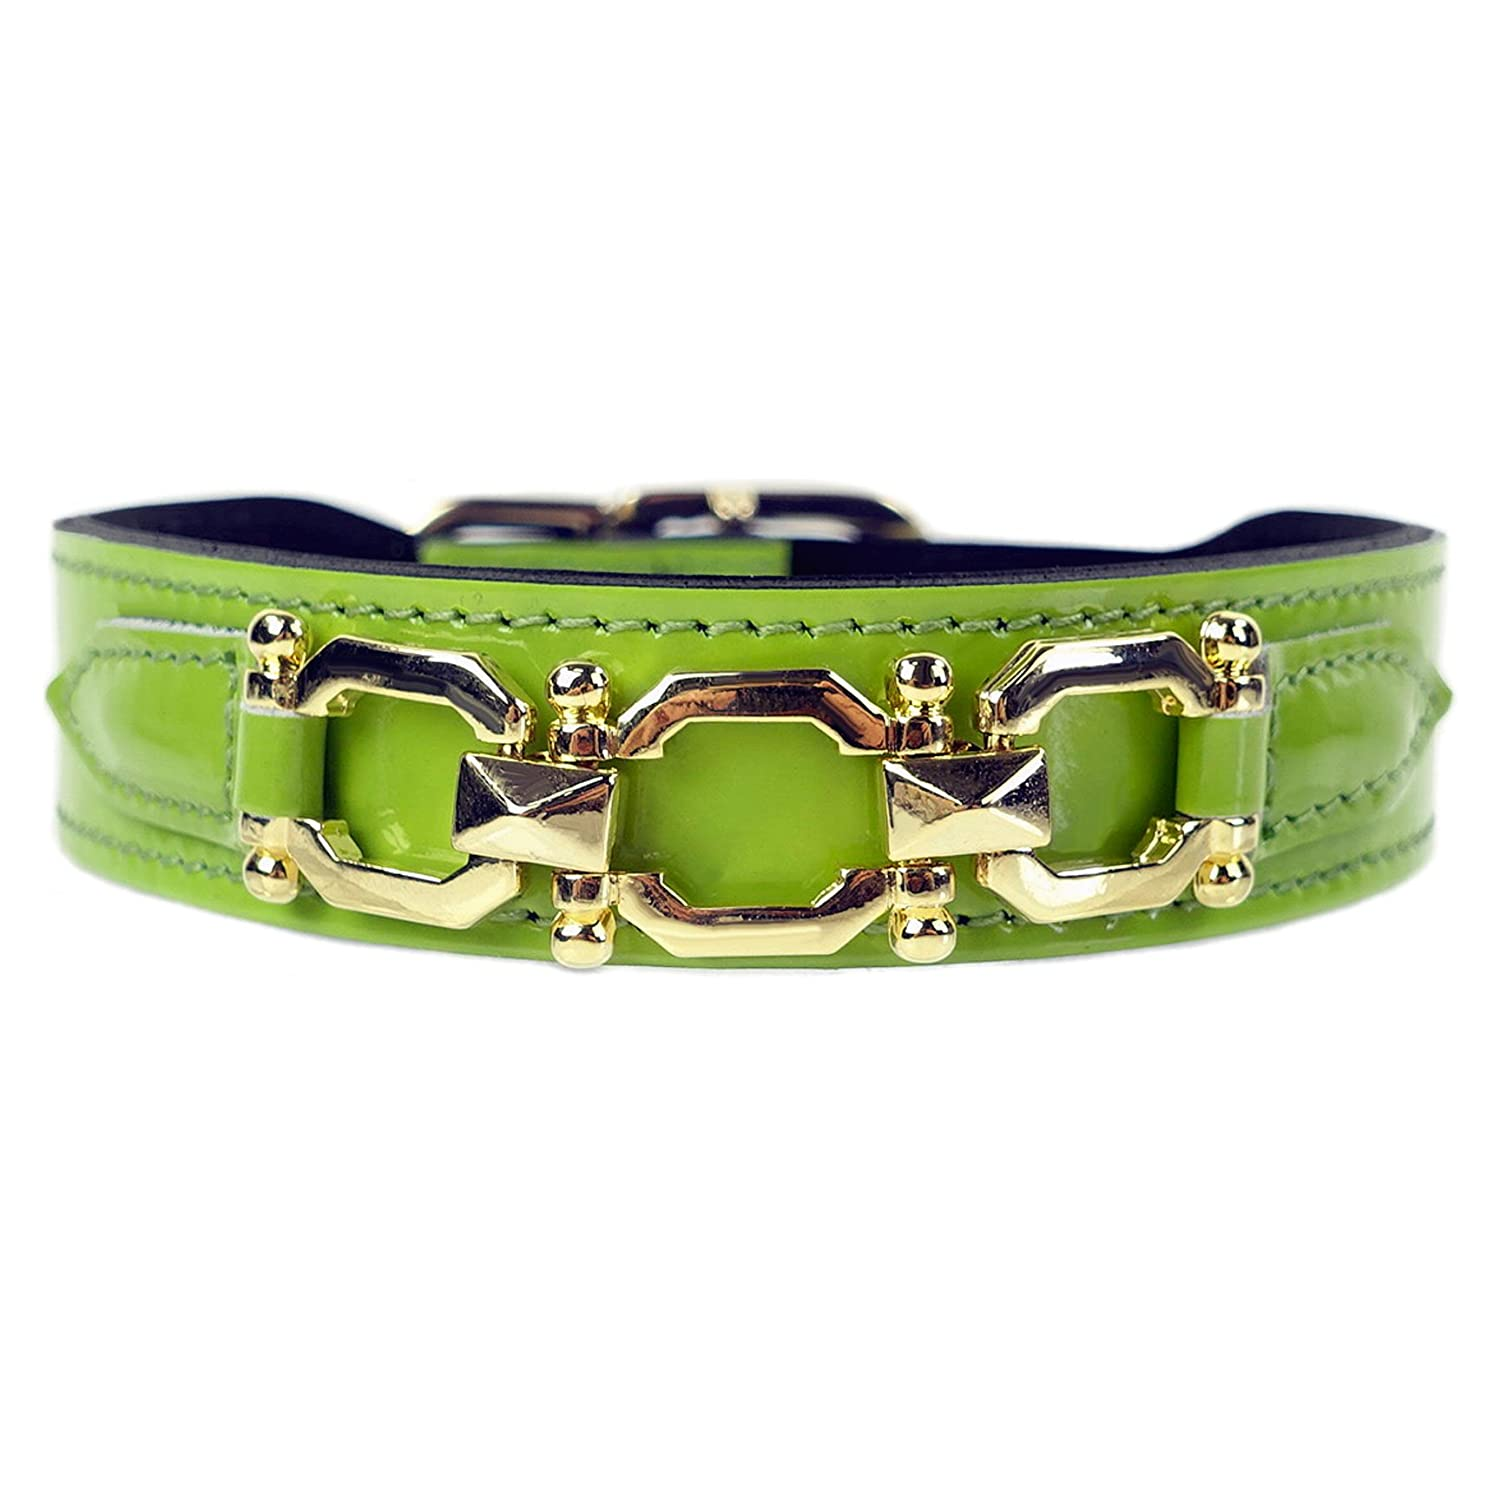 Lime Patent 18 20-Inch Lime Patent 18 20-Inch Hartman & pink Georgia pink Collection Dog Collar, Lime Patent, 18-20-Inch